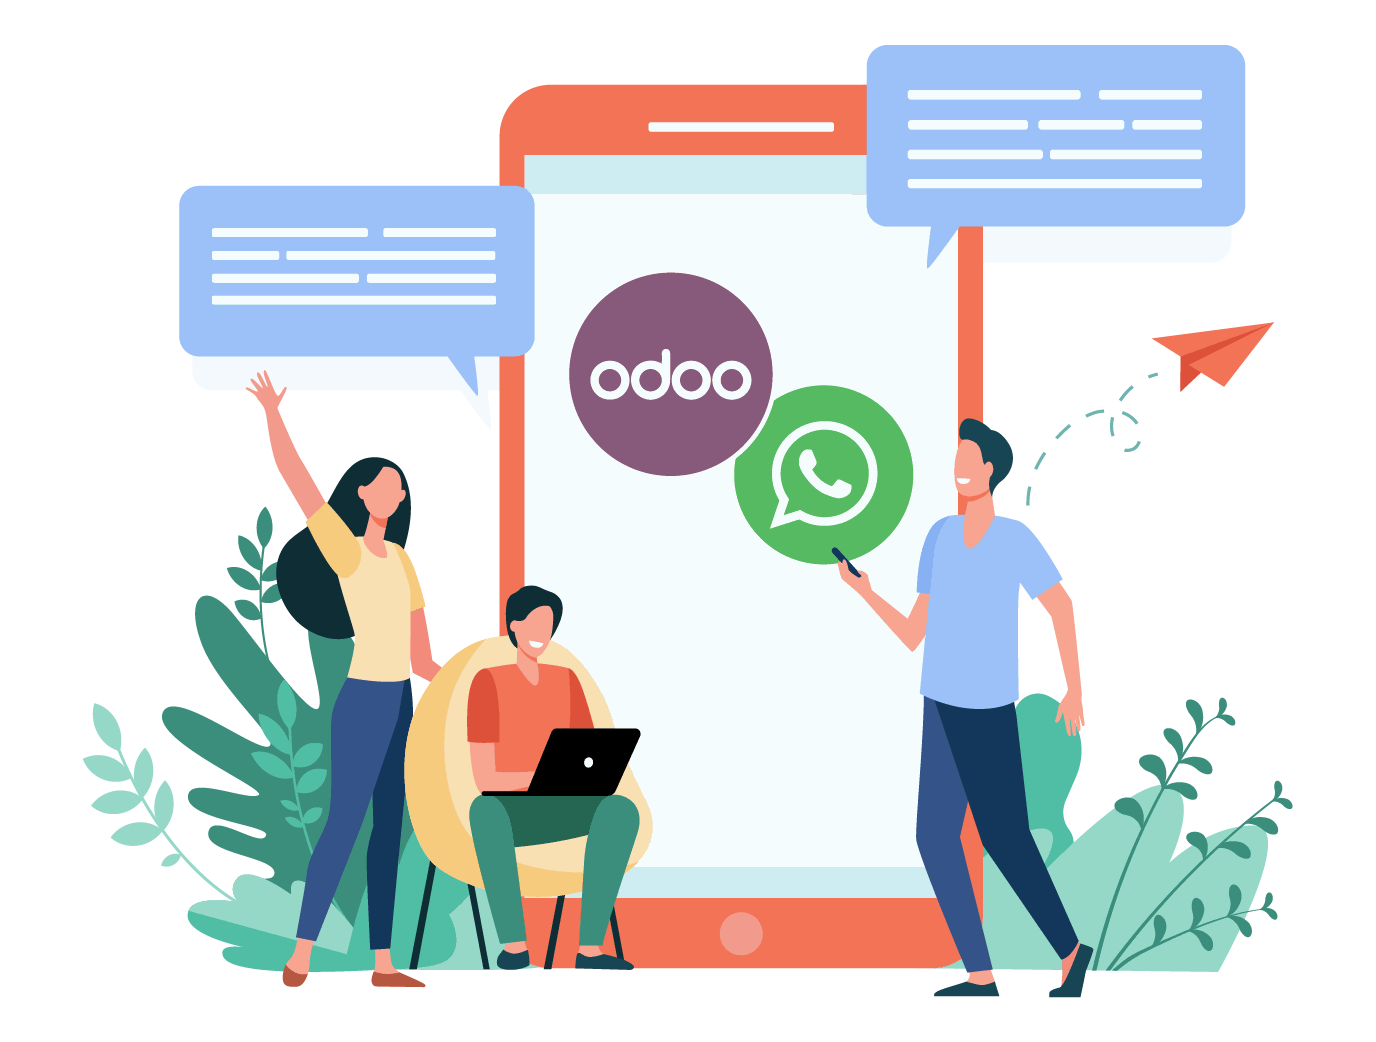 Odoo WhatsApp Integration/Connector Sales, Purchase, Account, Stock, P,Gandhinagar,Services,Other Services,77traders